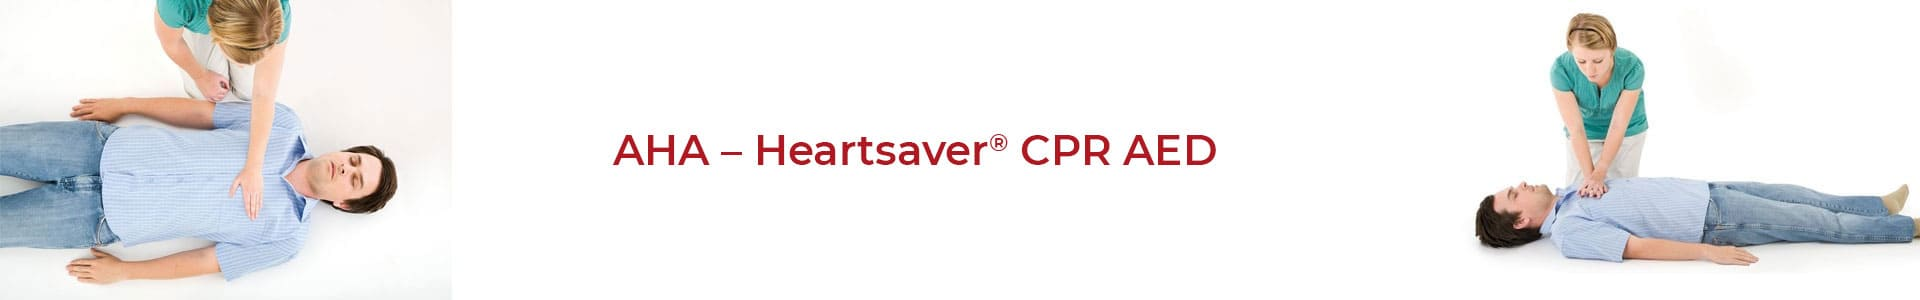 aha-heartsaver-firs-aid-cpr-aed